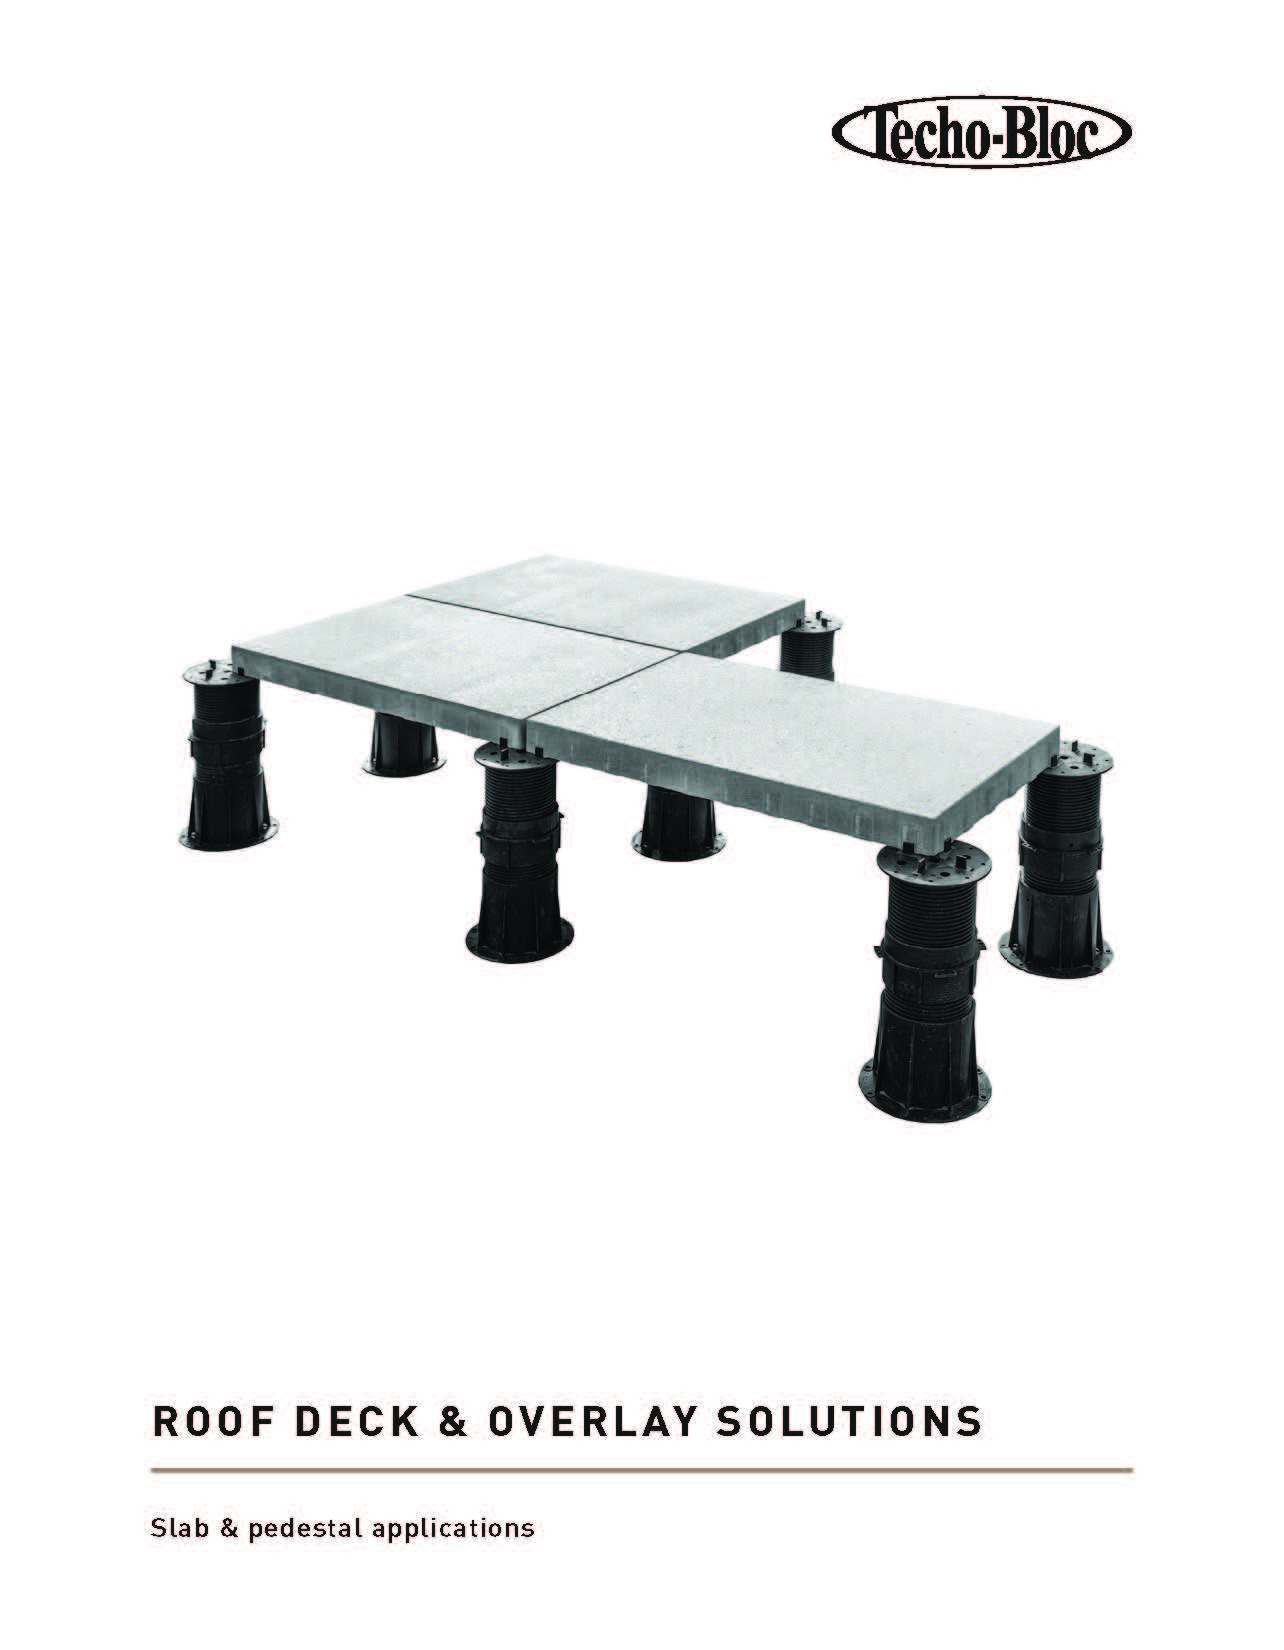 Roof Deck & Overlay Solutions